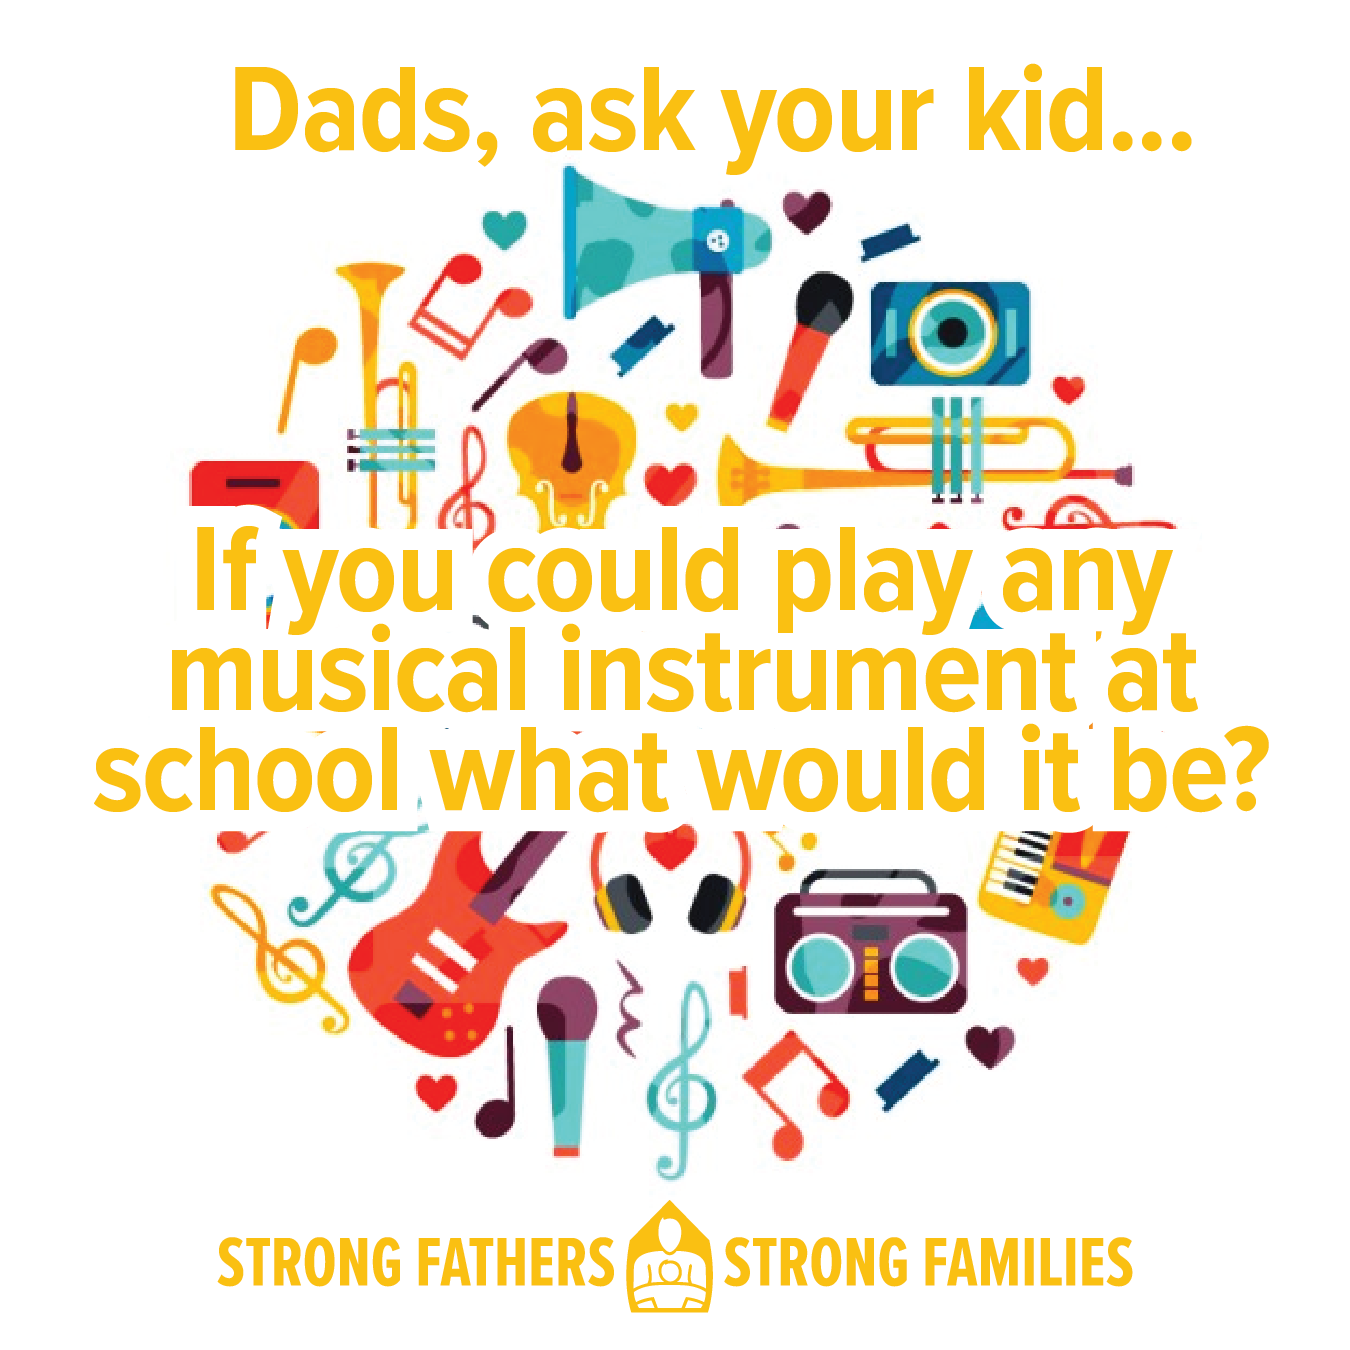 If you could play any musical instrument at school what would it be?